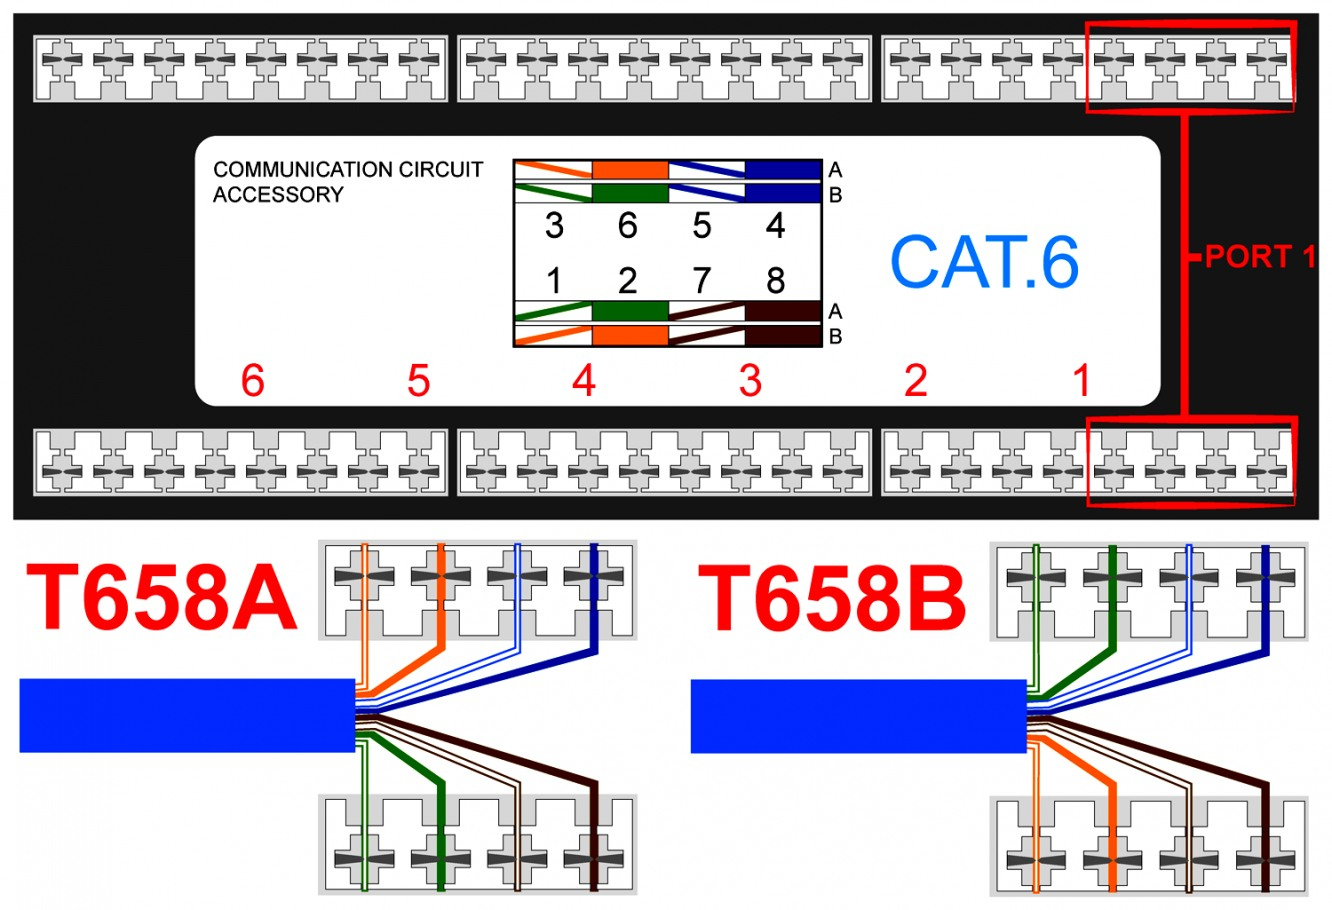 Rj25 Wire Diagram | Wiring Diagram - Cat 6 Wiring Diagram Rj45